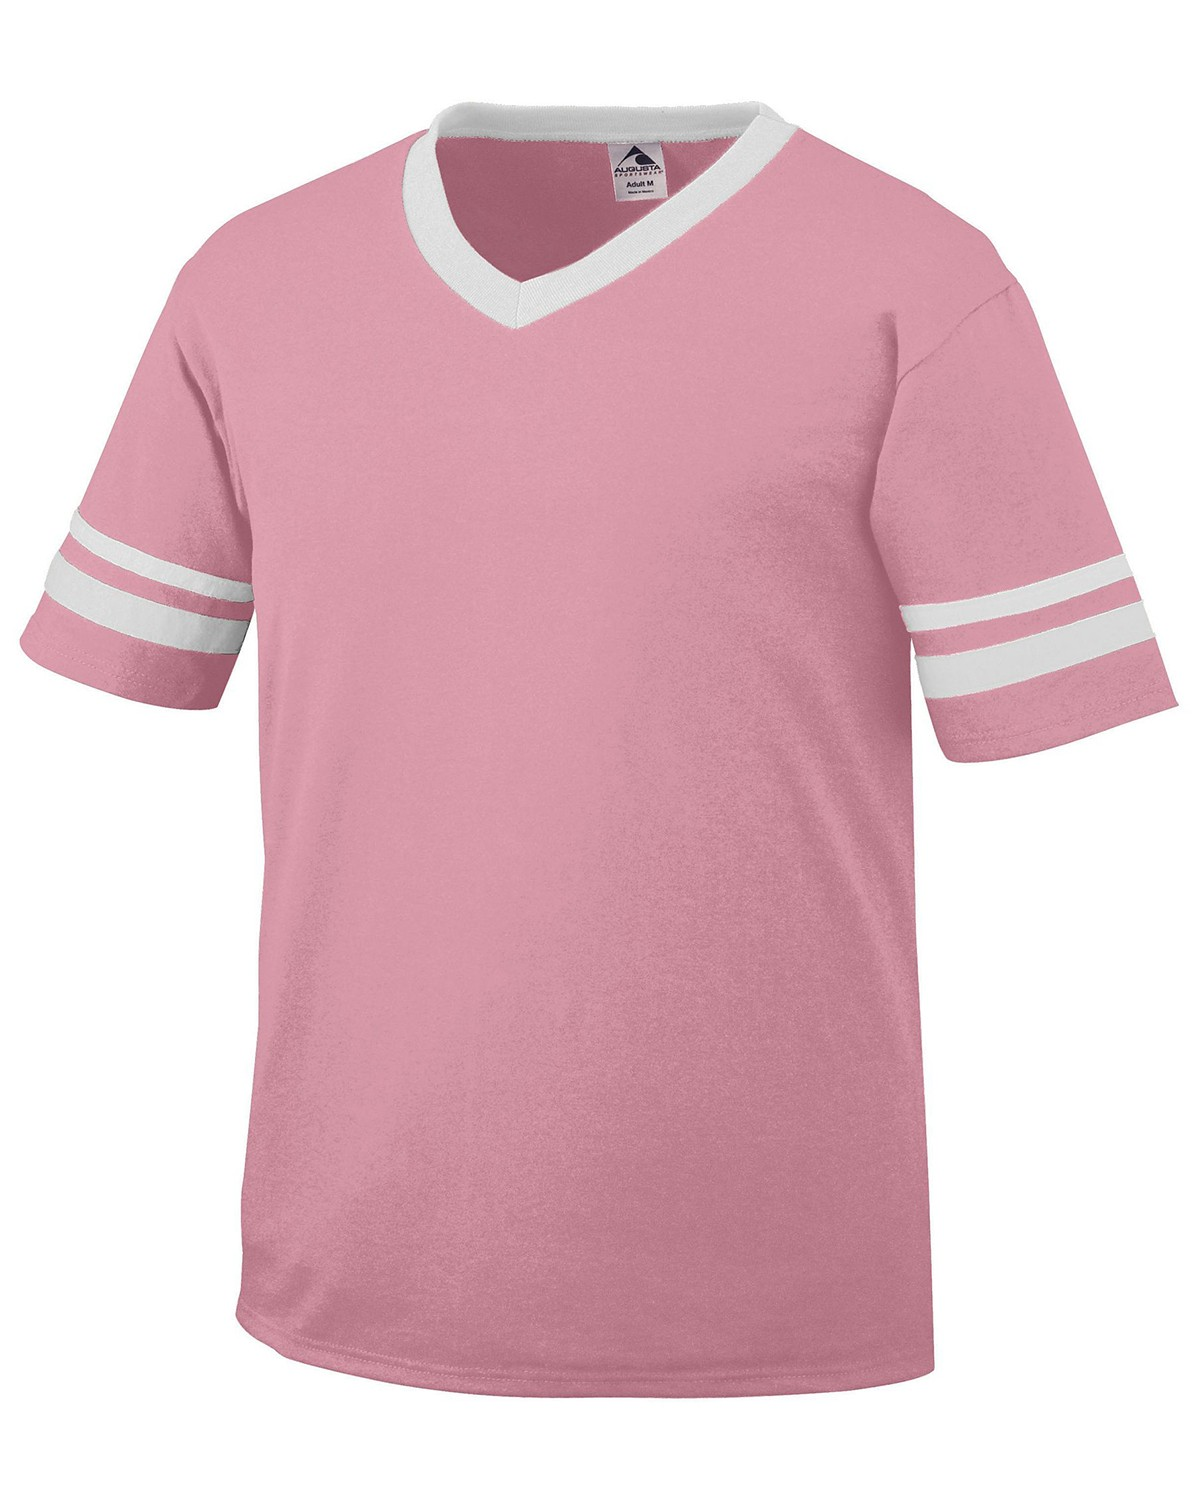 361 Augusta Drop Ship PINK/WHITE